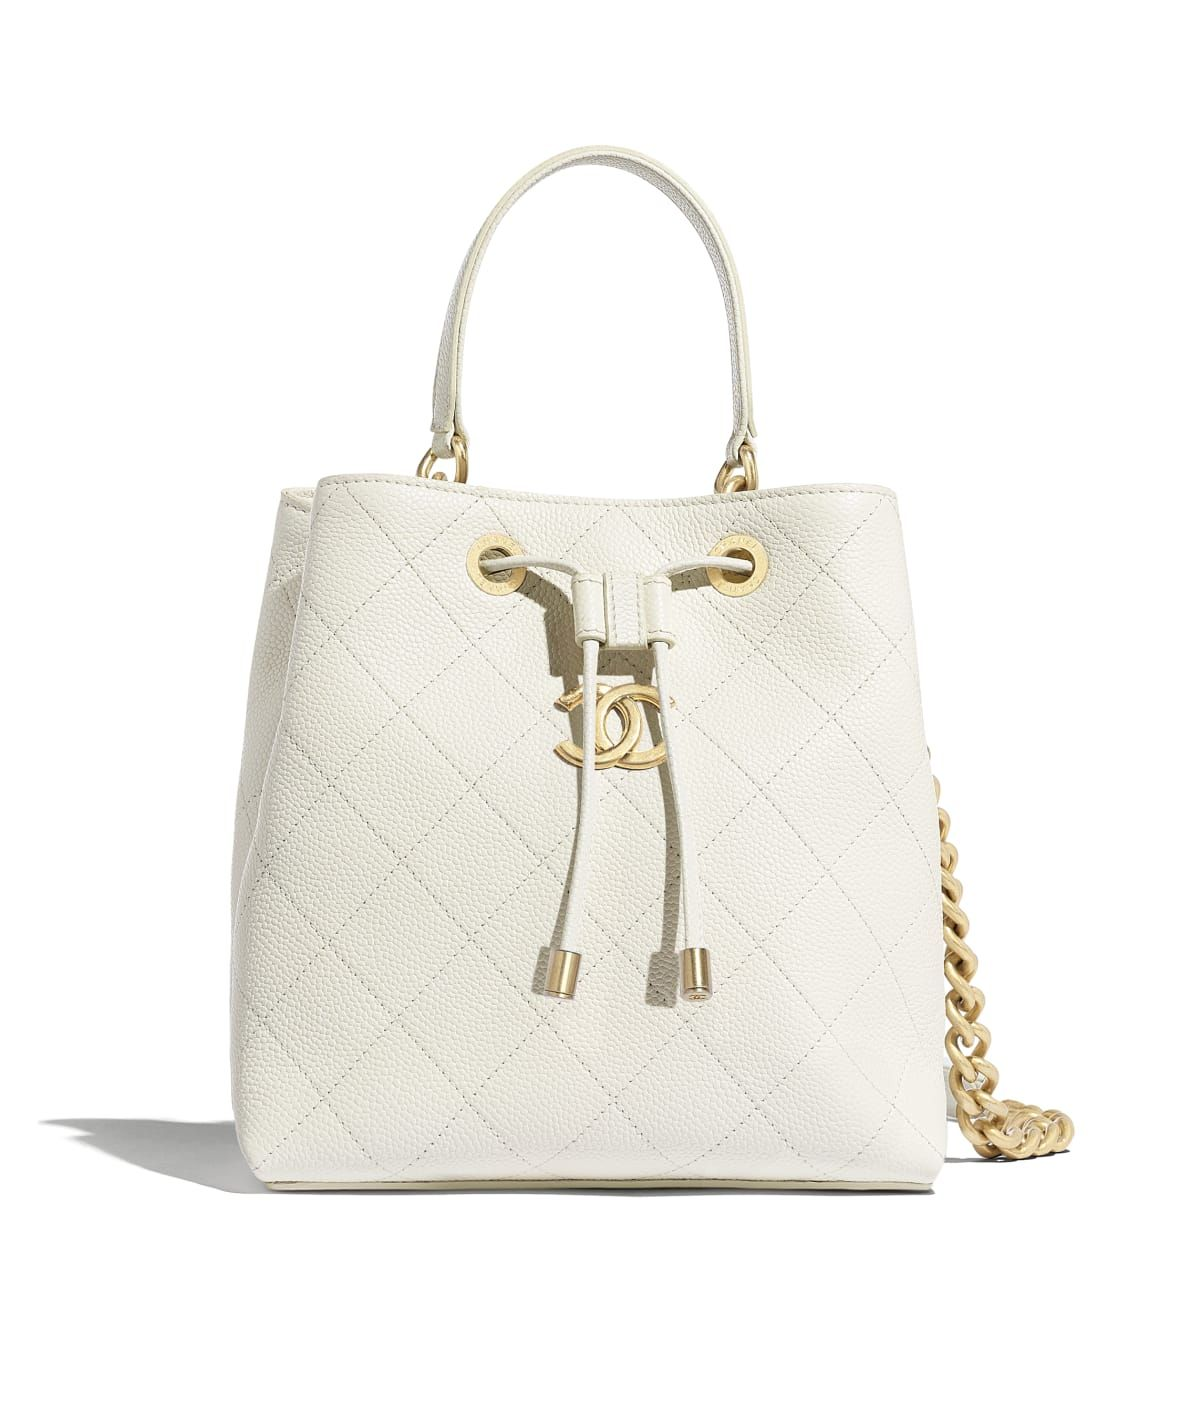 deaf5a9c0df9 Handbags of the Spring-Summer 2019 Pre-Collection CHANEL Fashion collection  : Drawstring Bag, grained calfskin & gold-tone metal, white on the CHANEL  ...